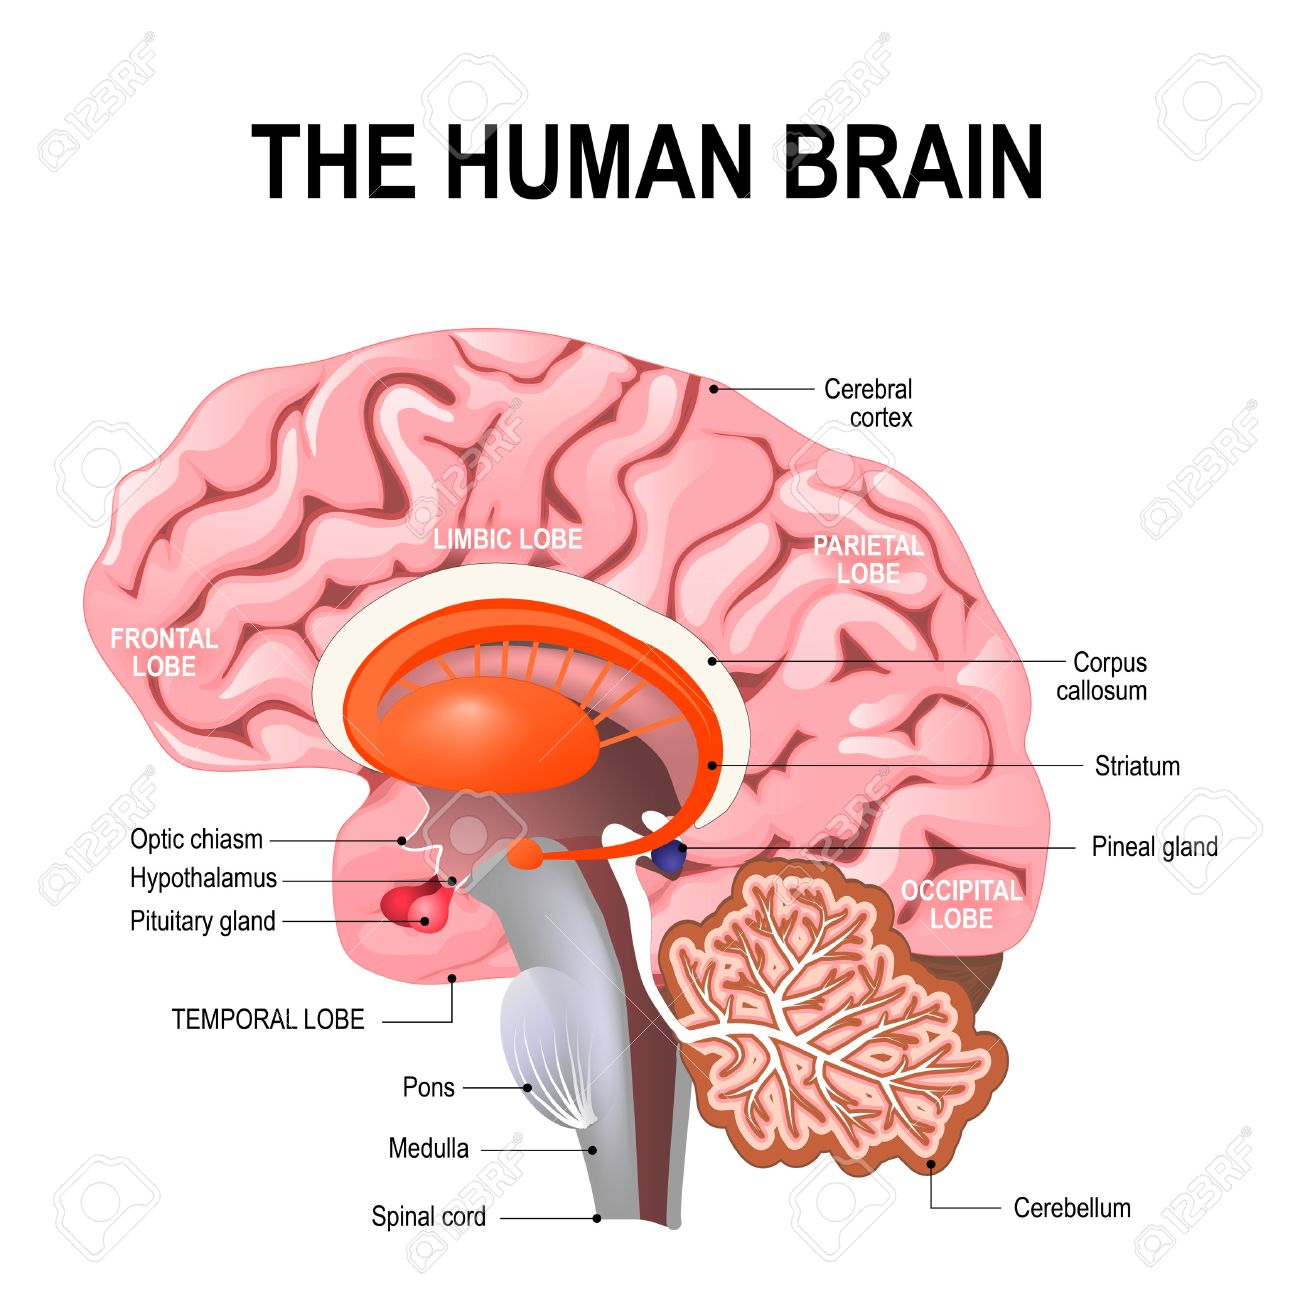 detailed anatomy of the human brain. Illustration showing the medulla, pons, cerebellum, hypothalamus, thalamus, midbrain. Sagittal view of the brain. Isolated on a white background. - 71358063